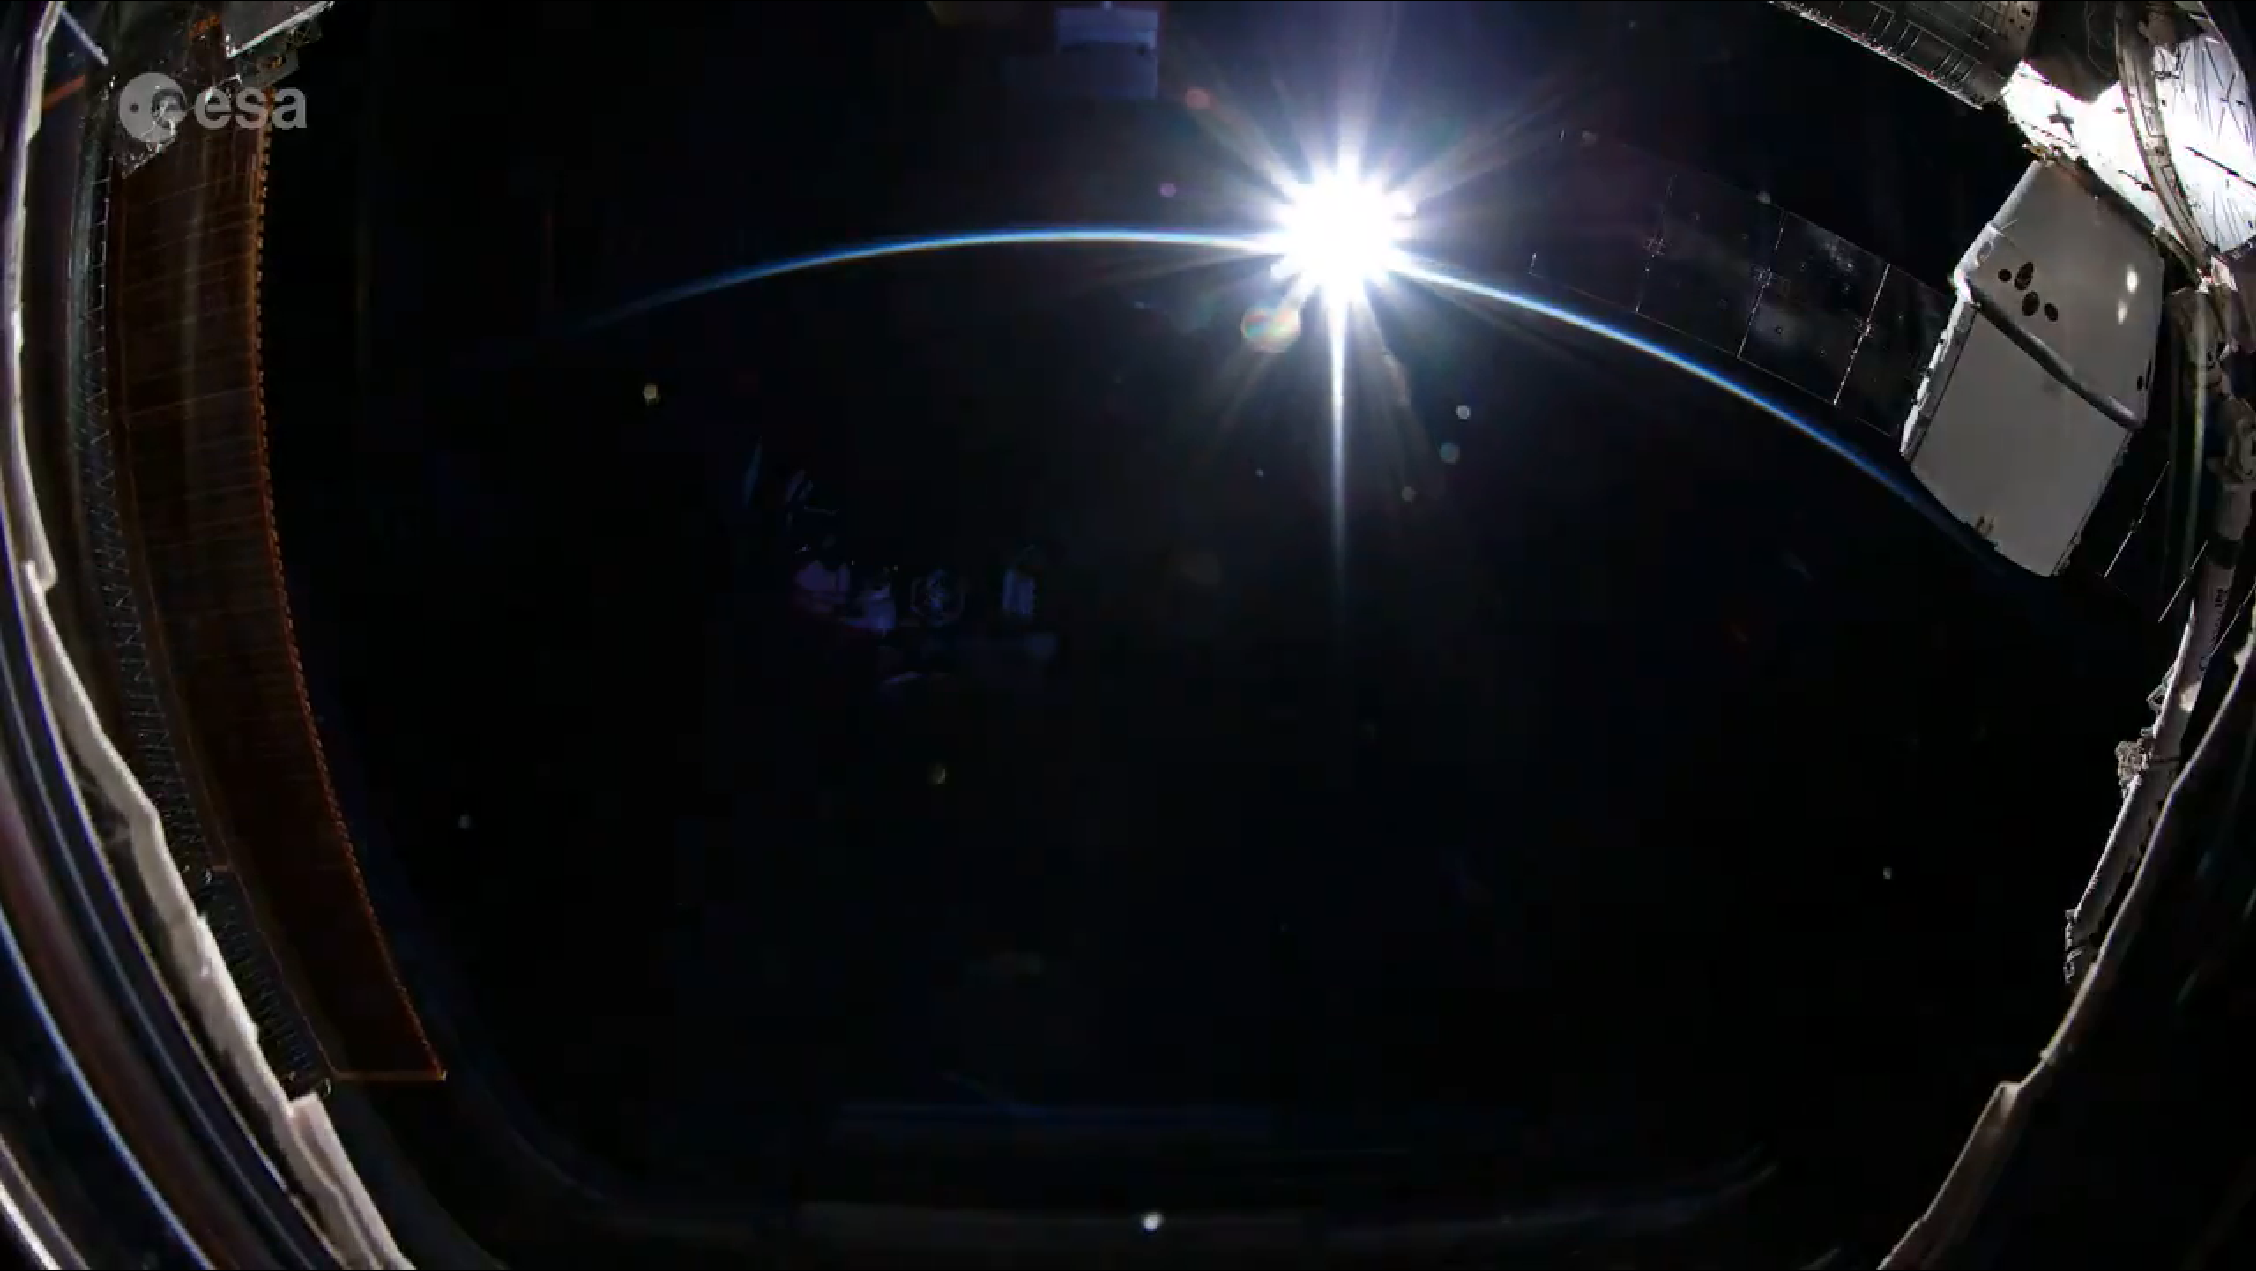 [Earthview Wonders][Video] No.565: Sunrise From Space